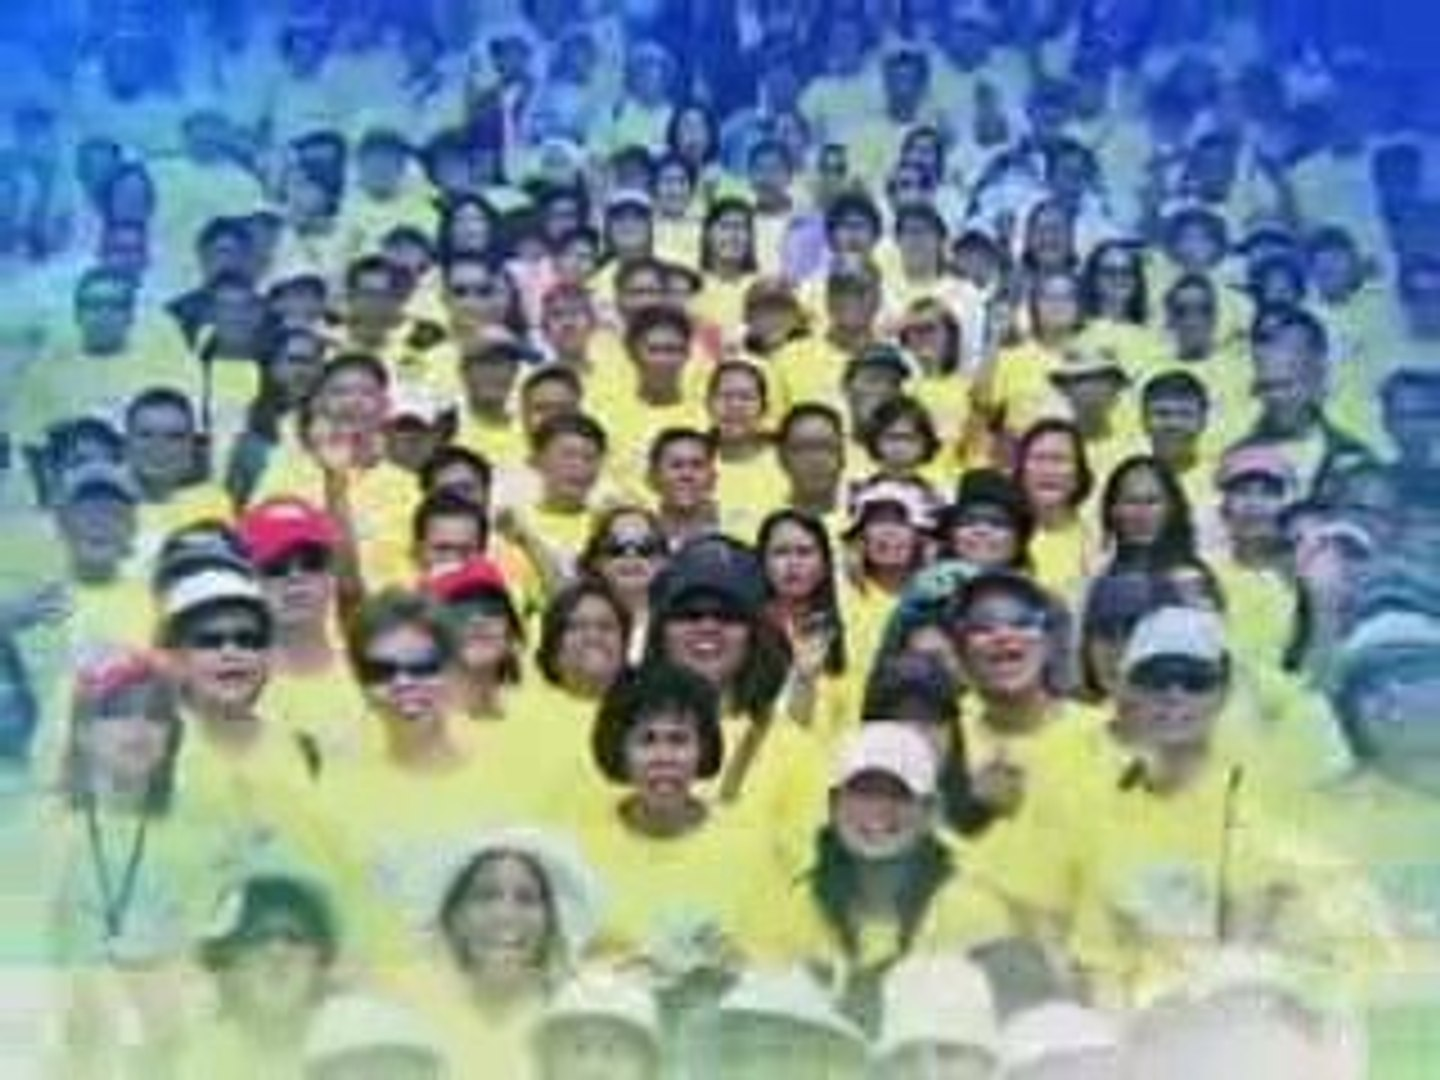 Sonshine Philippines Movement of Pastor Apollo C. Quiboloy